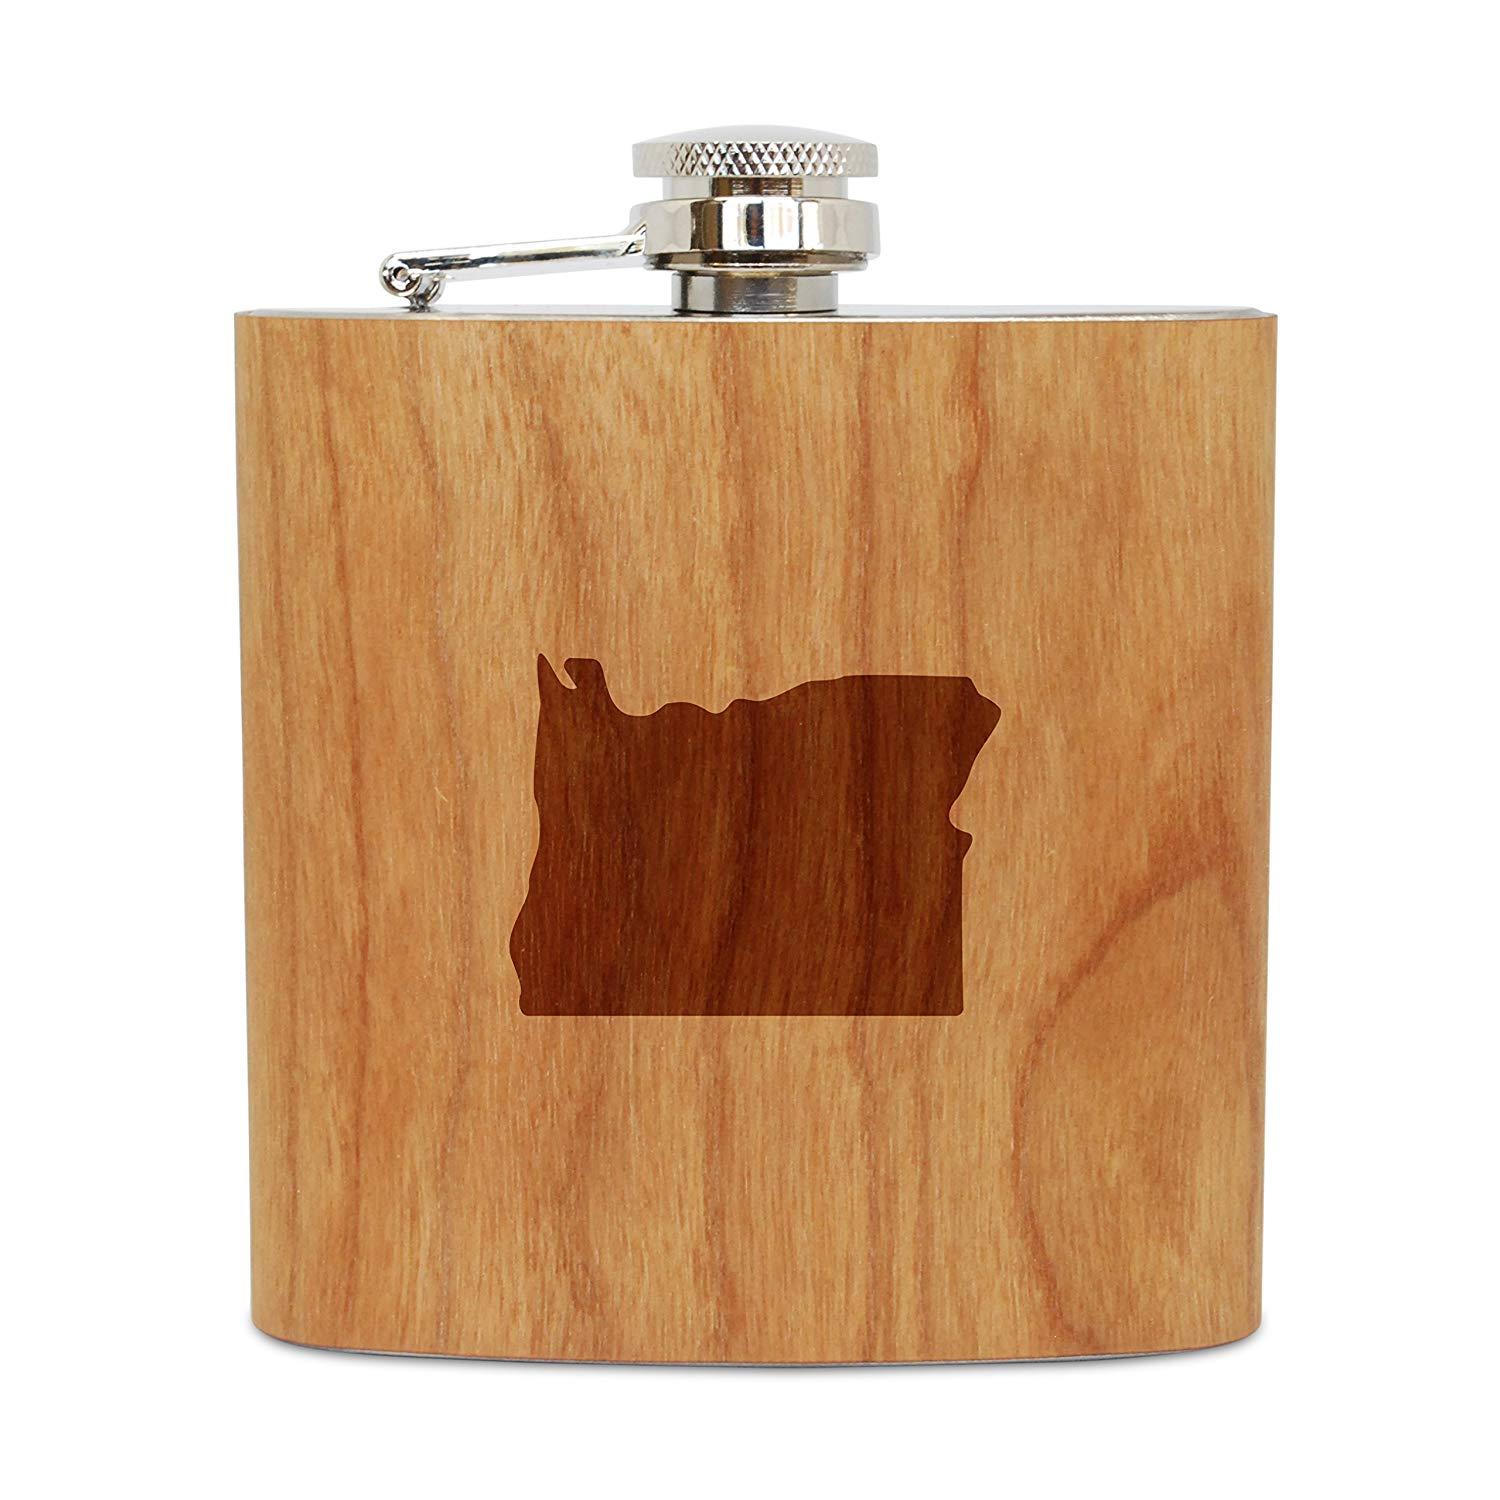 WOODEN ACCESSORIES COMPANY Cherry Wood Flask With Stainless Steel Body - Laser Engraved Flask With Oregon Design - 6 Oz Wood Hip Flask Handmade In USA